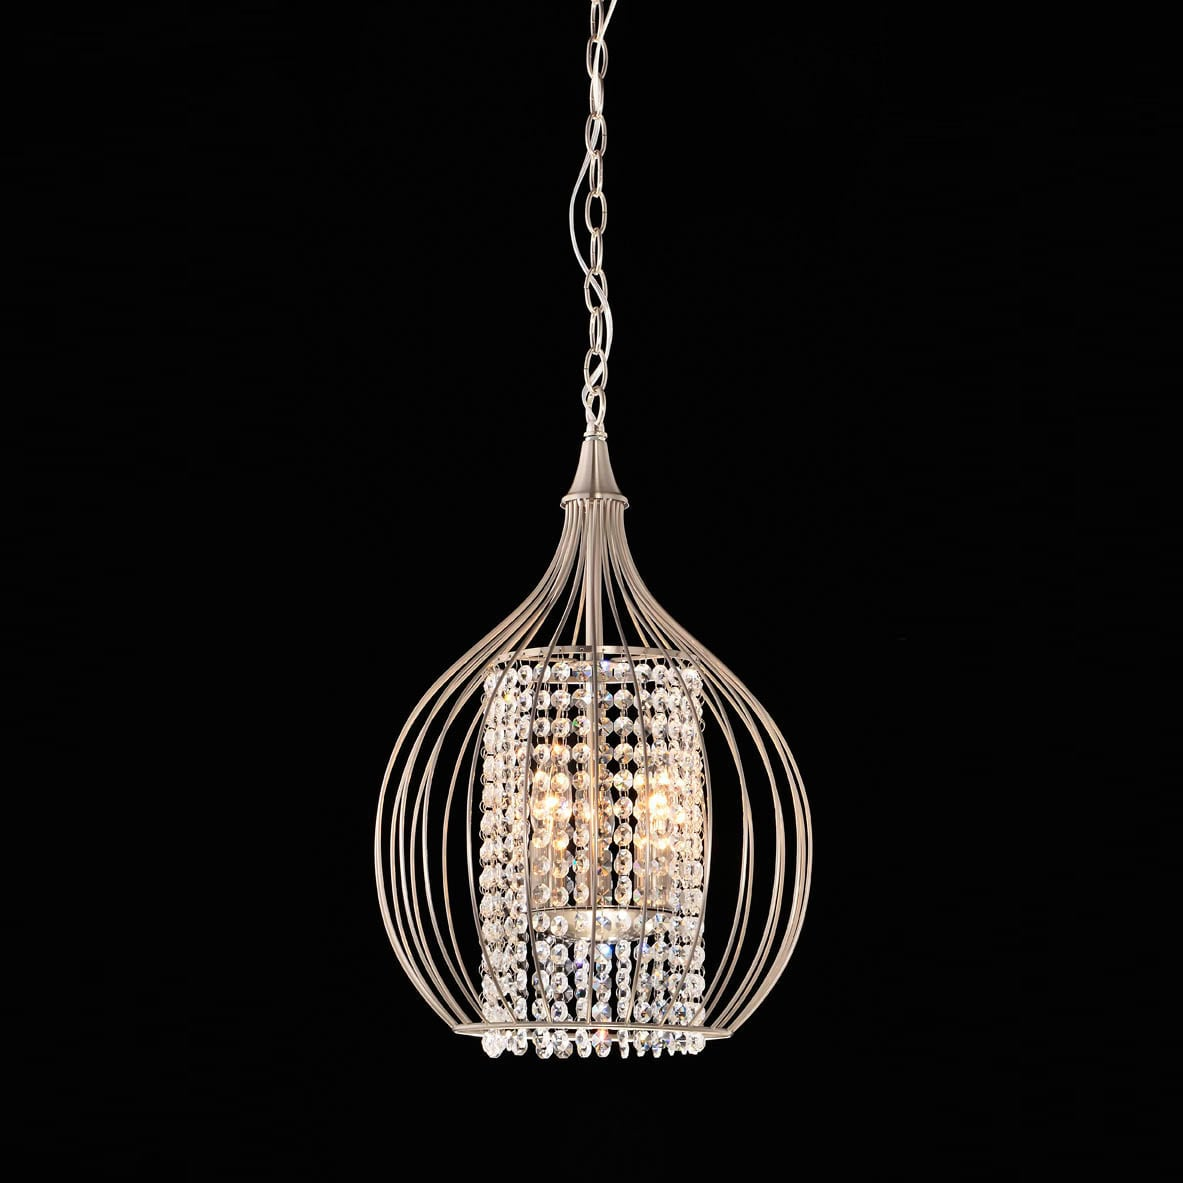 Compact Satin Nickel And Crystal Pendant Ceiling